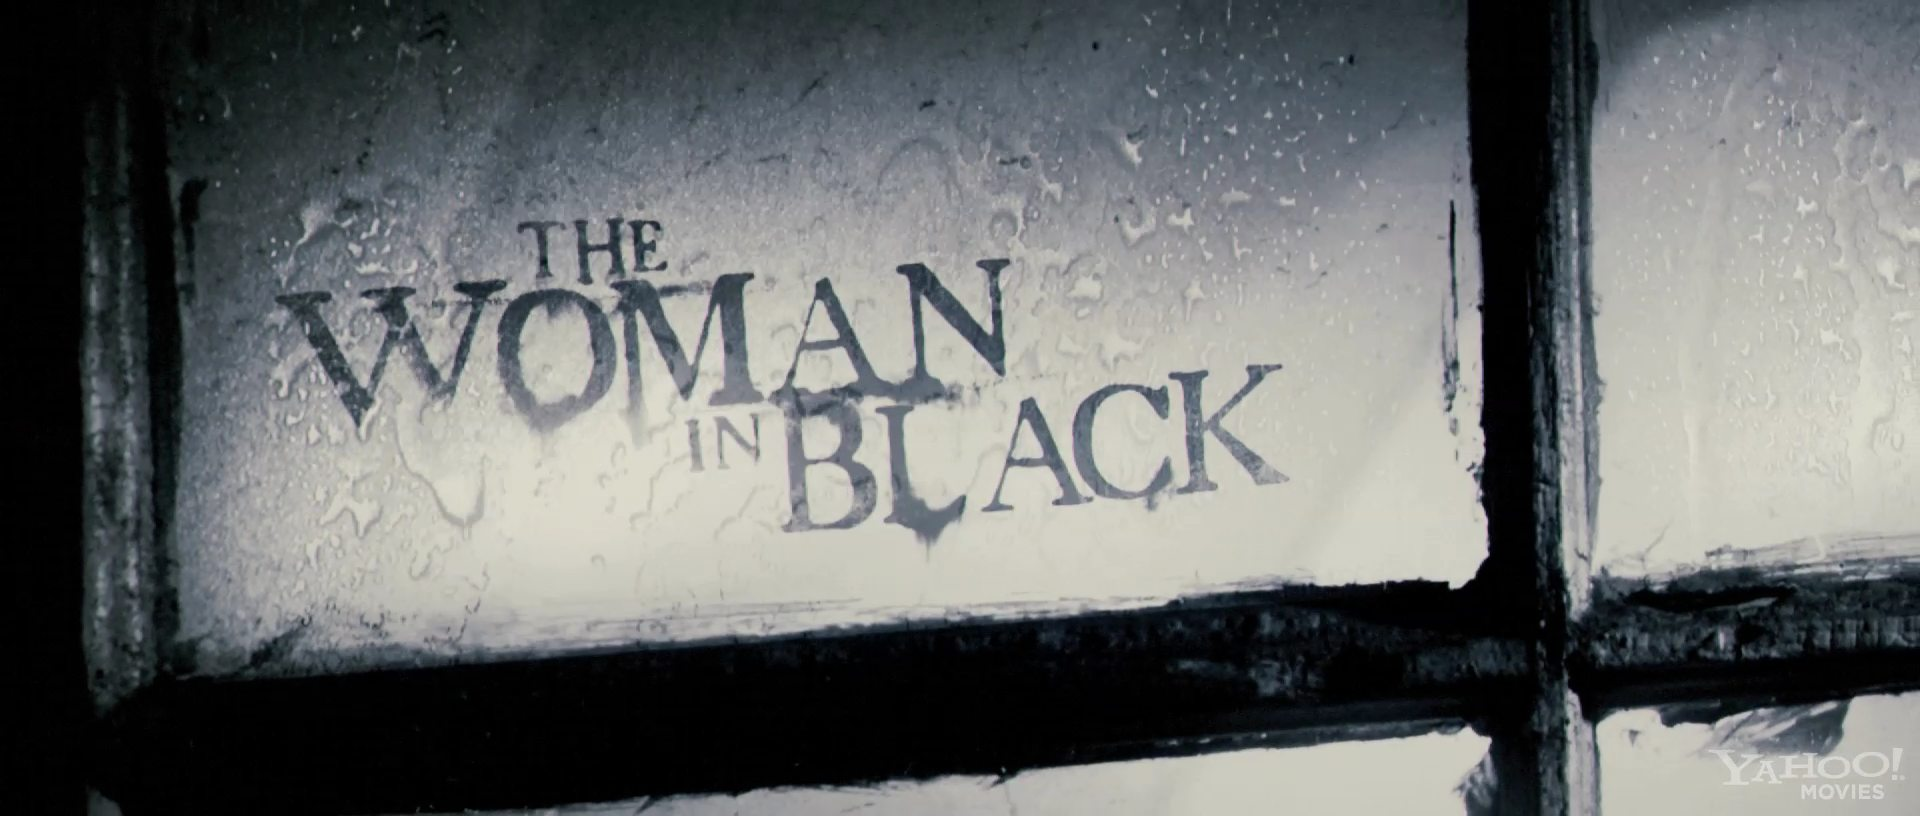 the woman in black Buy the woman in black tickets from the official ticketmastercom site find the  woman in black schedule, reviews and photos.